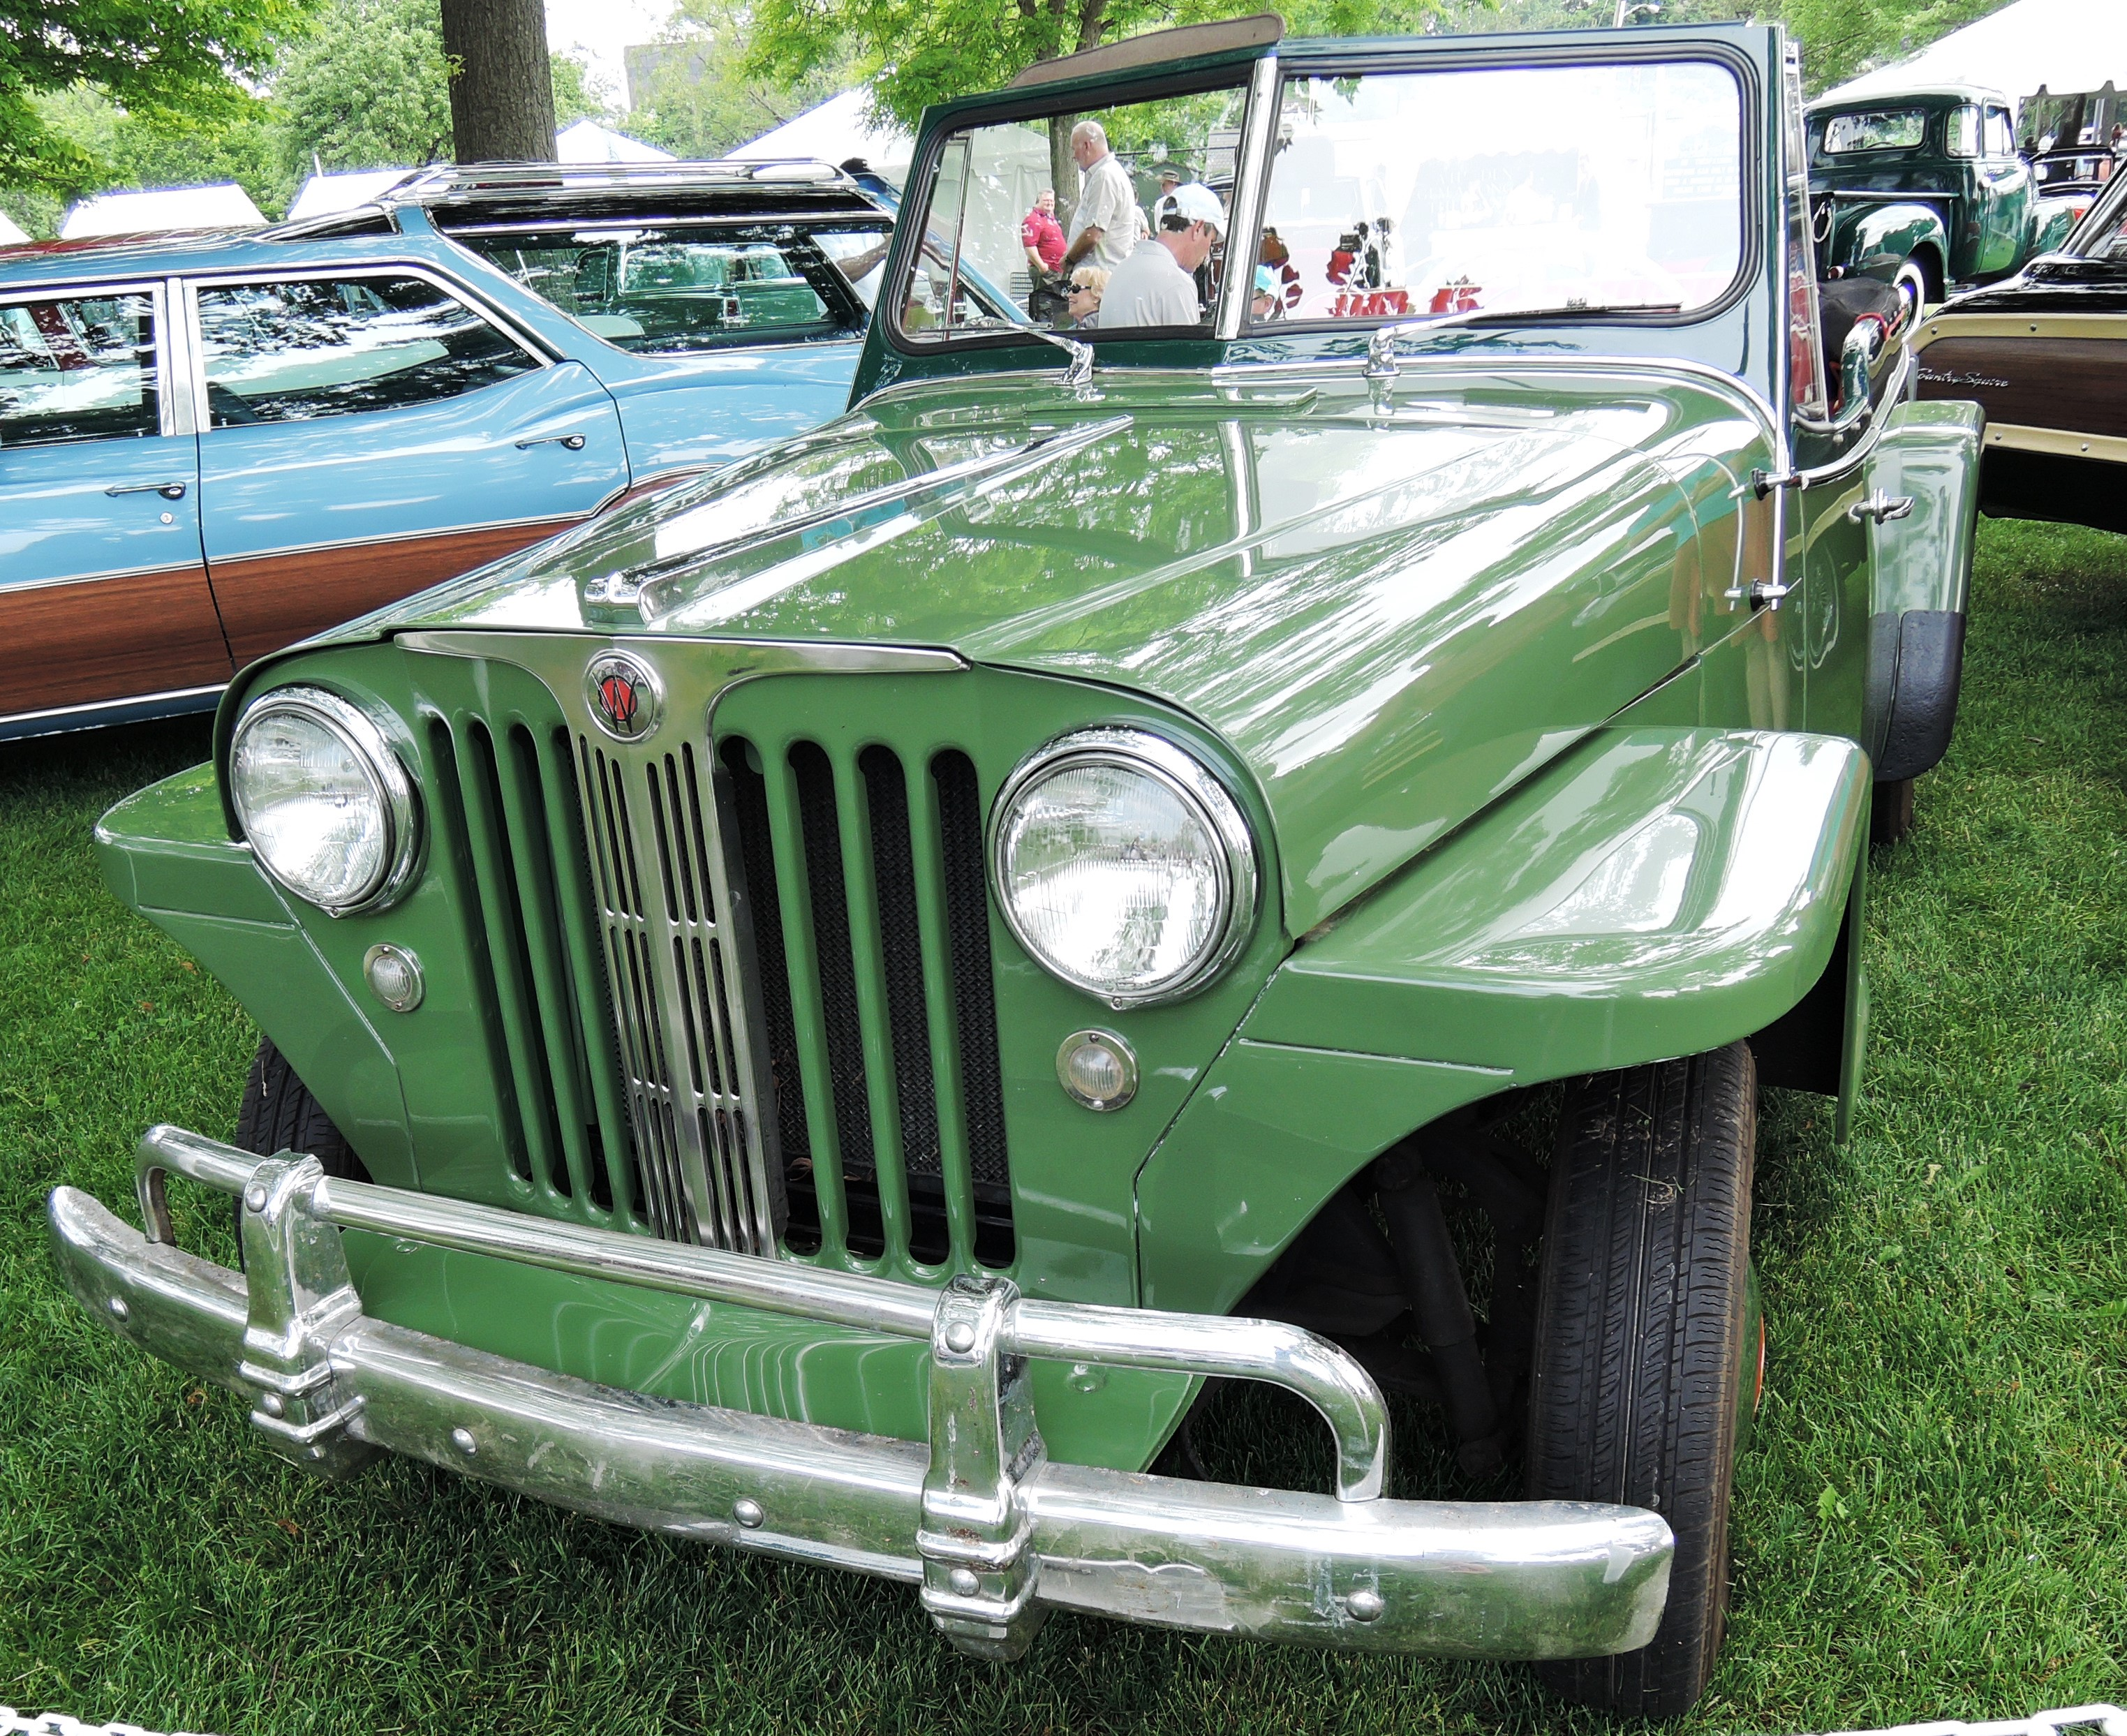 green 1949 Willys Overland Jeepster - greenwich concours